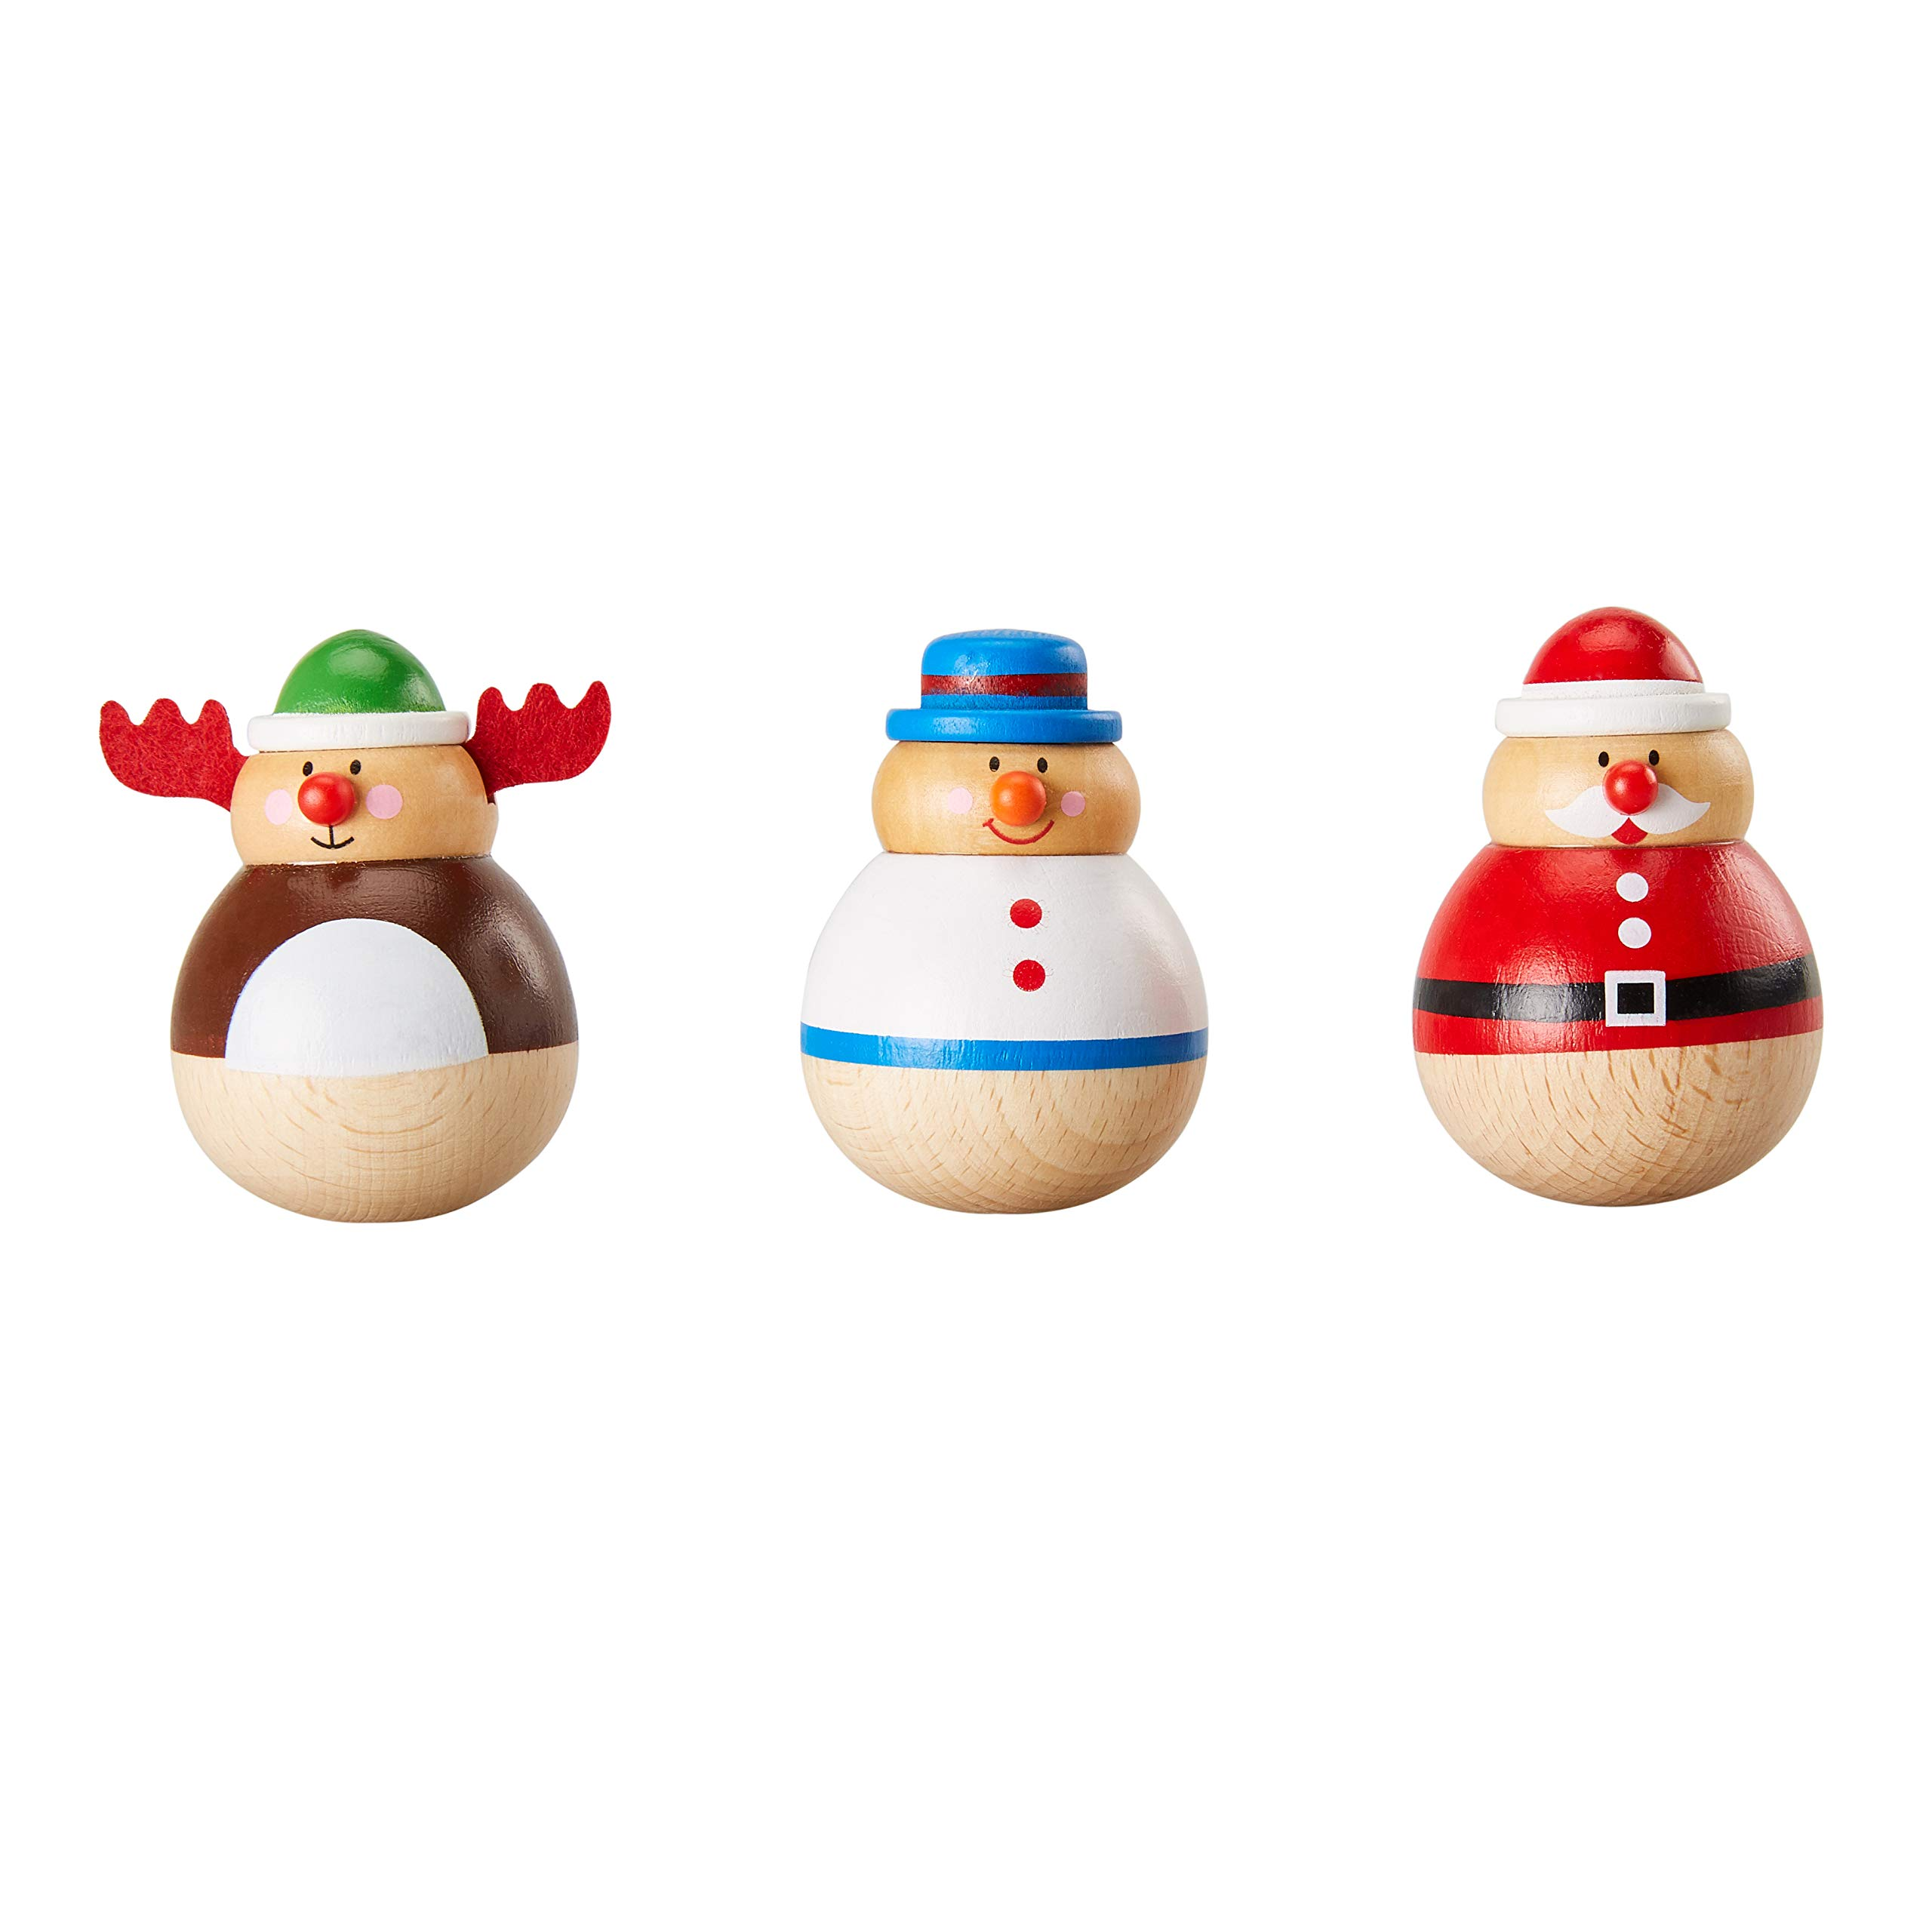 Christmas Roly Poly Toy - 3-Pack Wooden Tumbler Doll Figurines, Holiday Doll Decoration Desk Top, Table, Office, Home, Snowman Reindeer Santa Design, 1.64 x 1.64 x 2.3 Inches